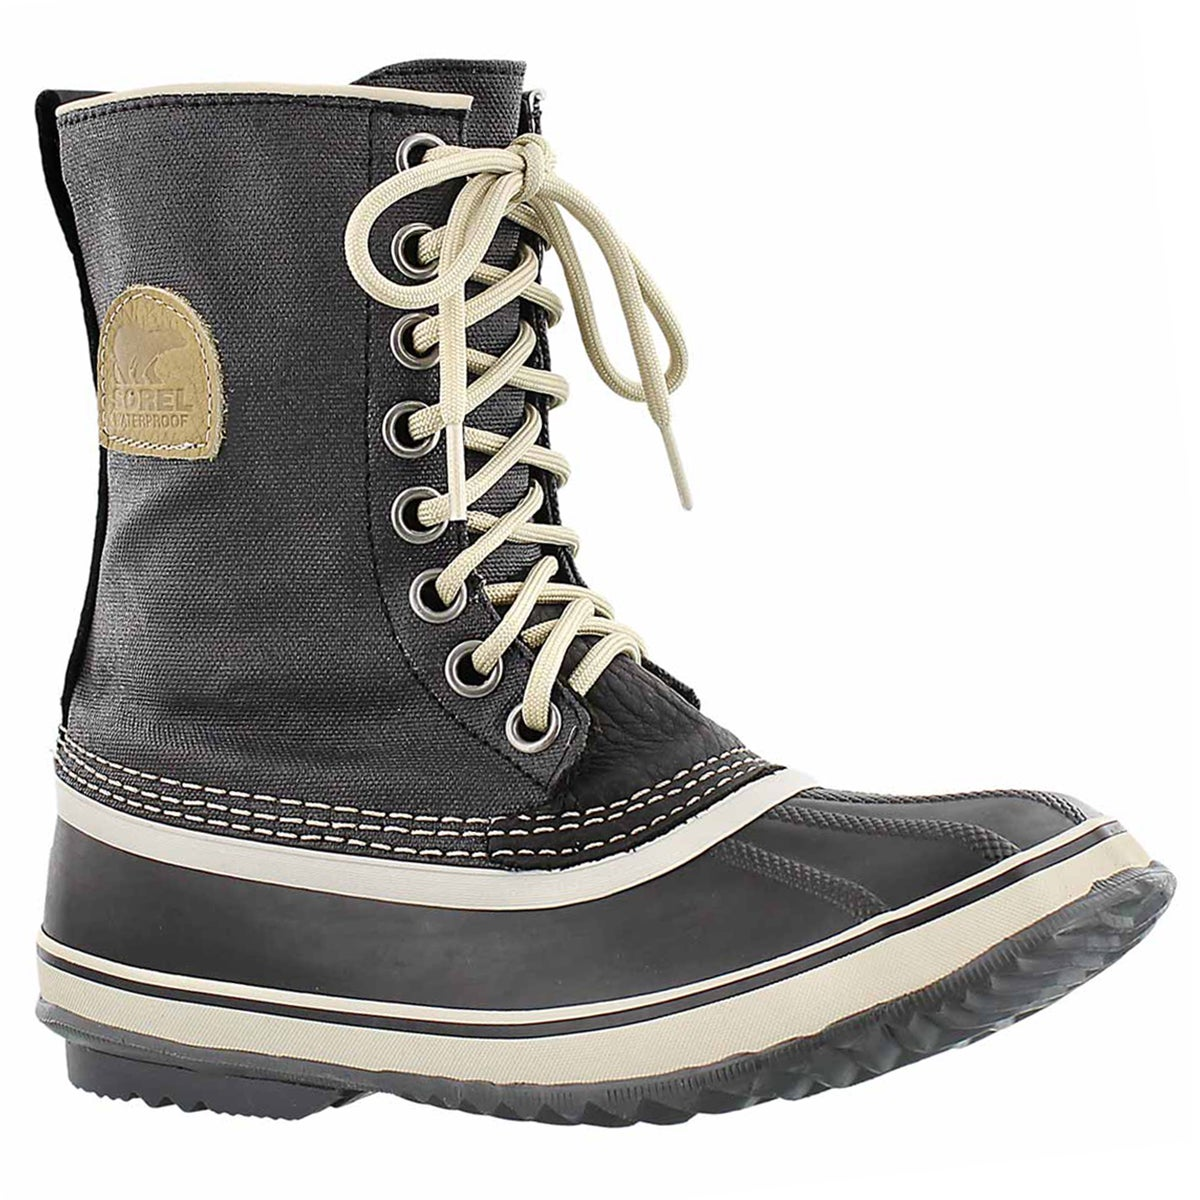 Lds 1964 Premium CVS black winter boot